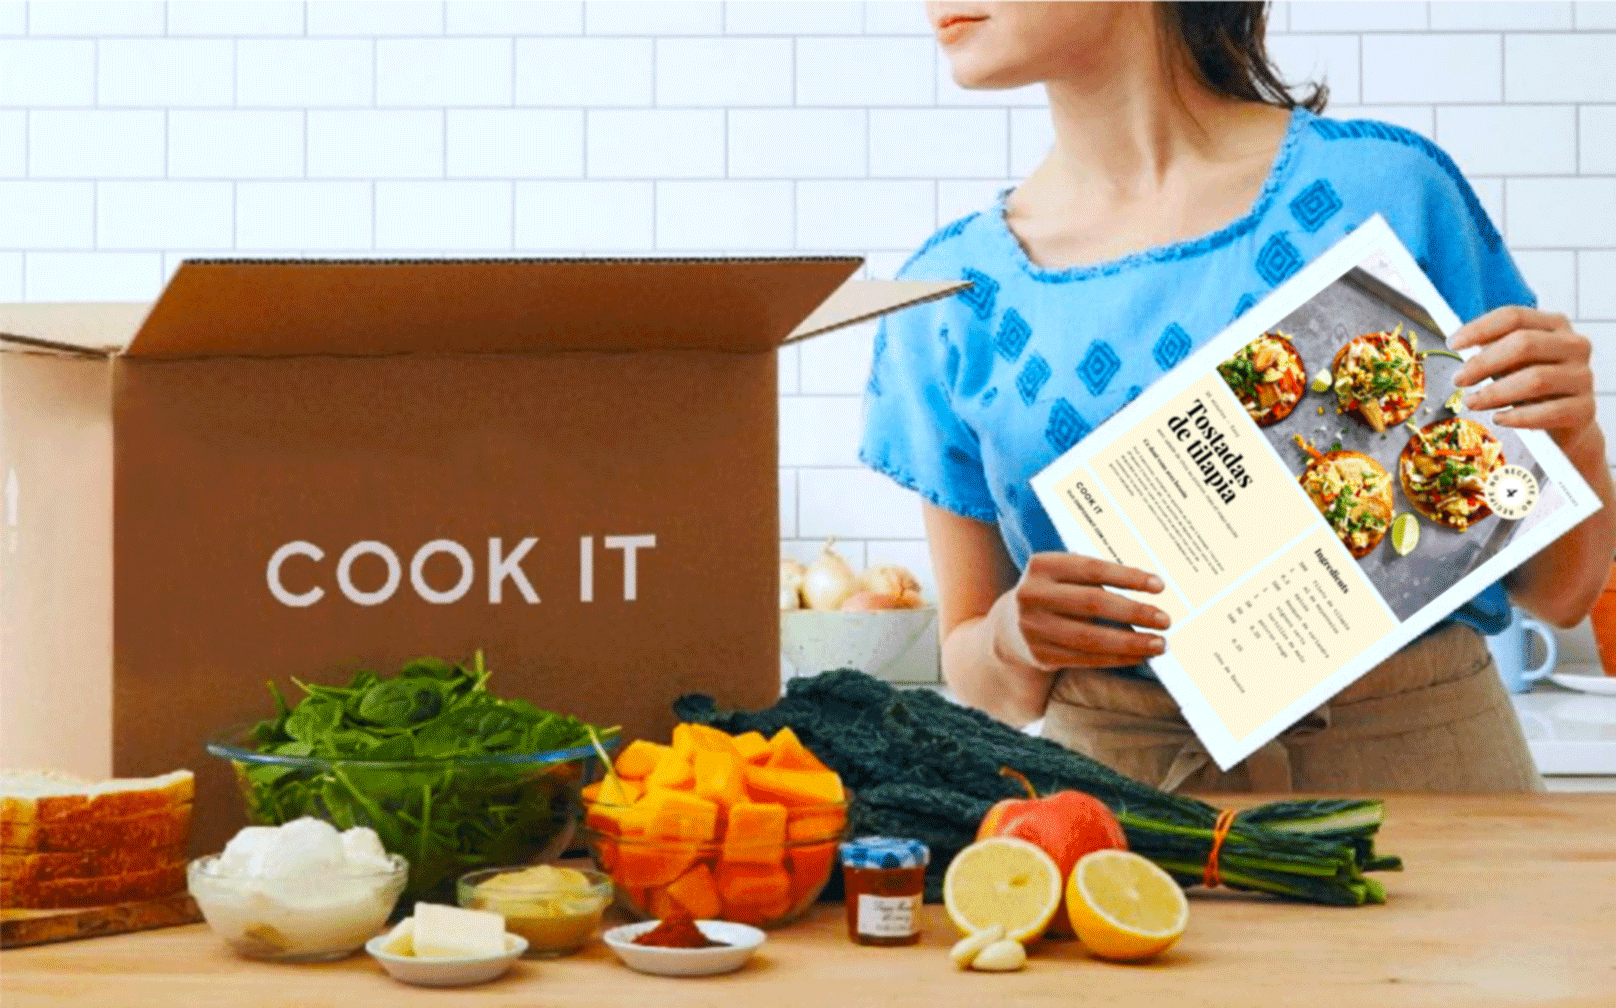 CookIt box with vegetables and woman holding recipe note